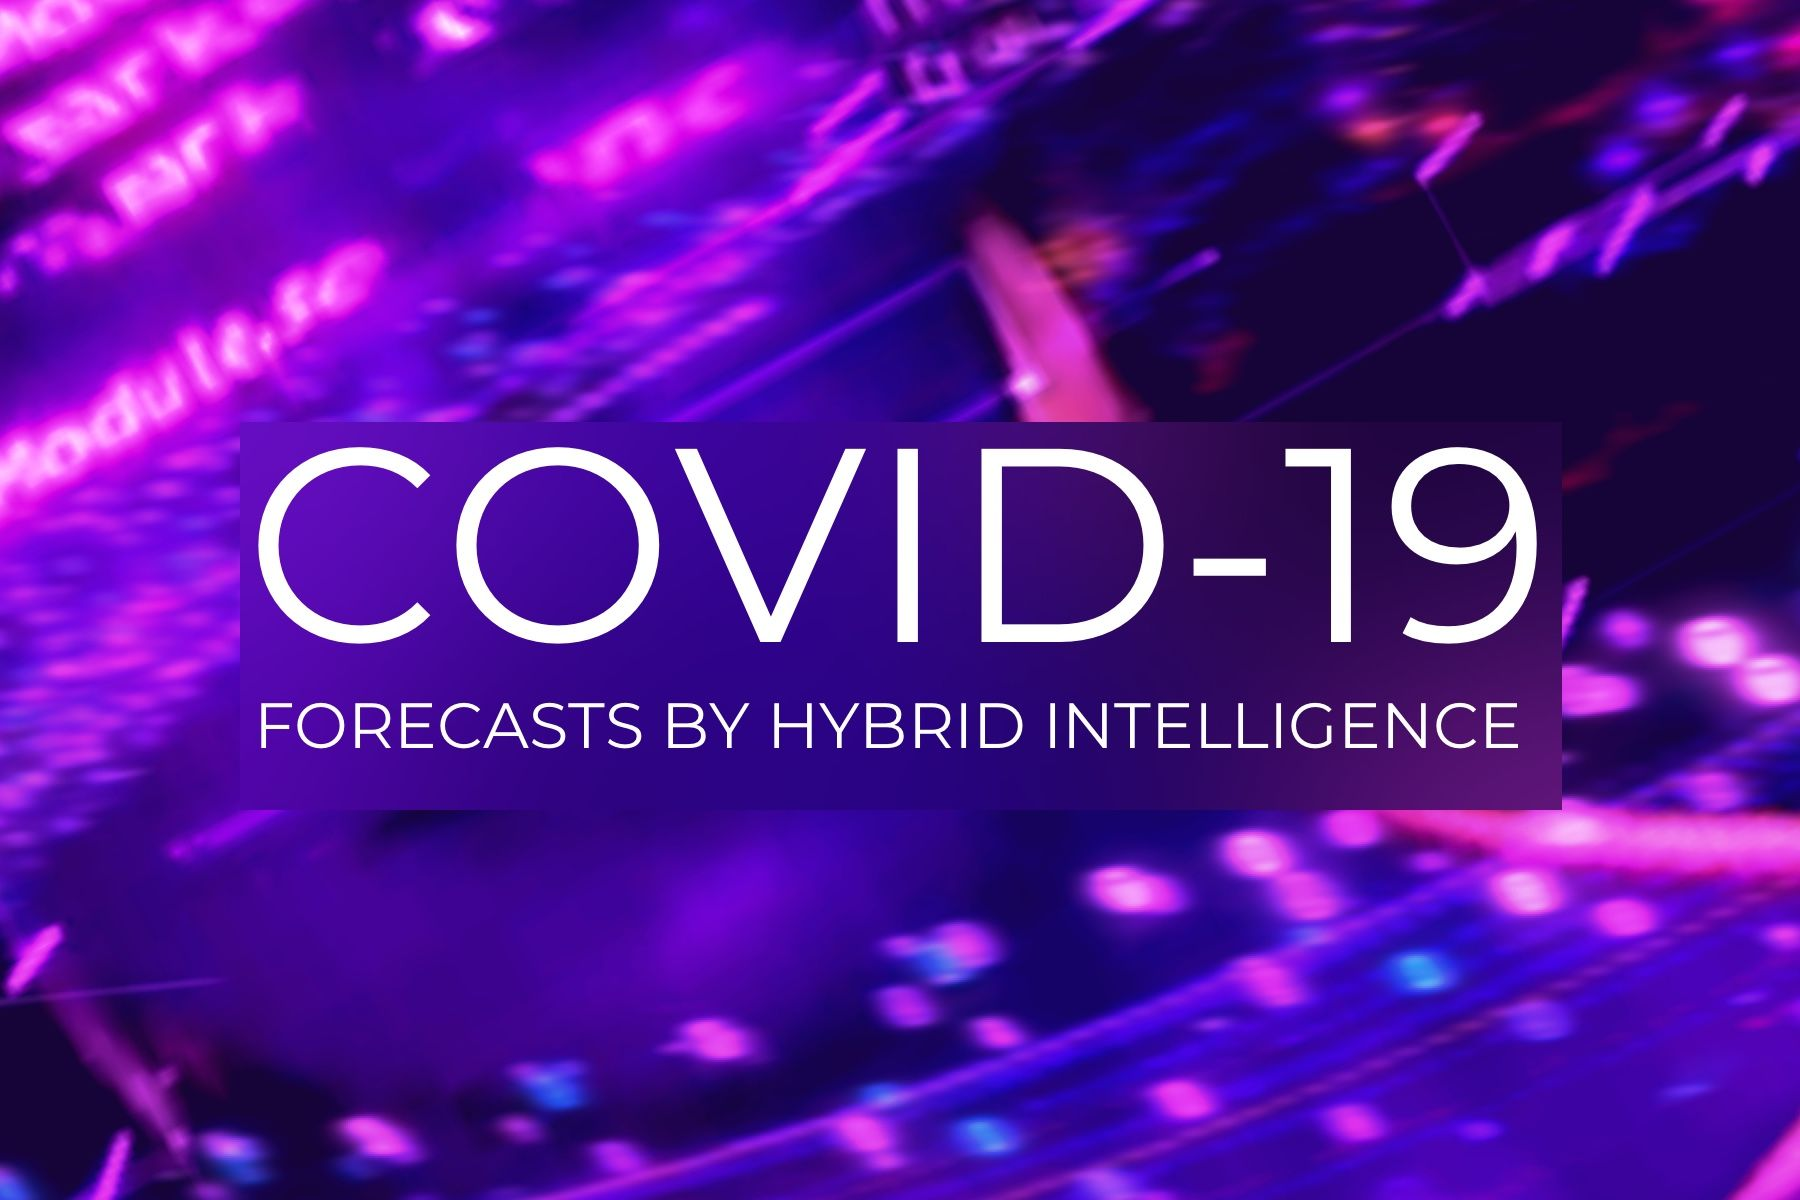 COVID-19 forecasts by Hybrid Intelligence: end of the pandemic, vaccine date, GDP impact